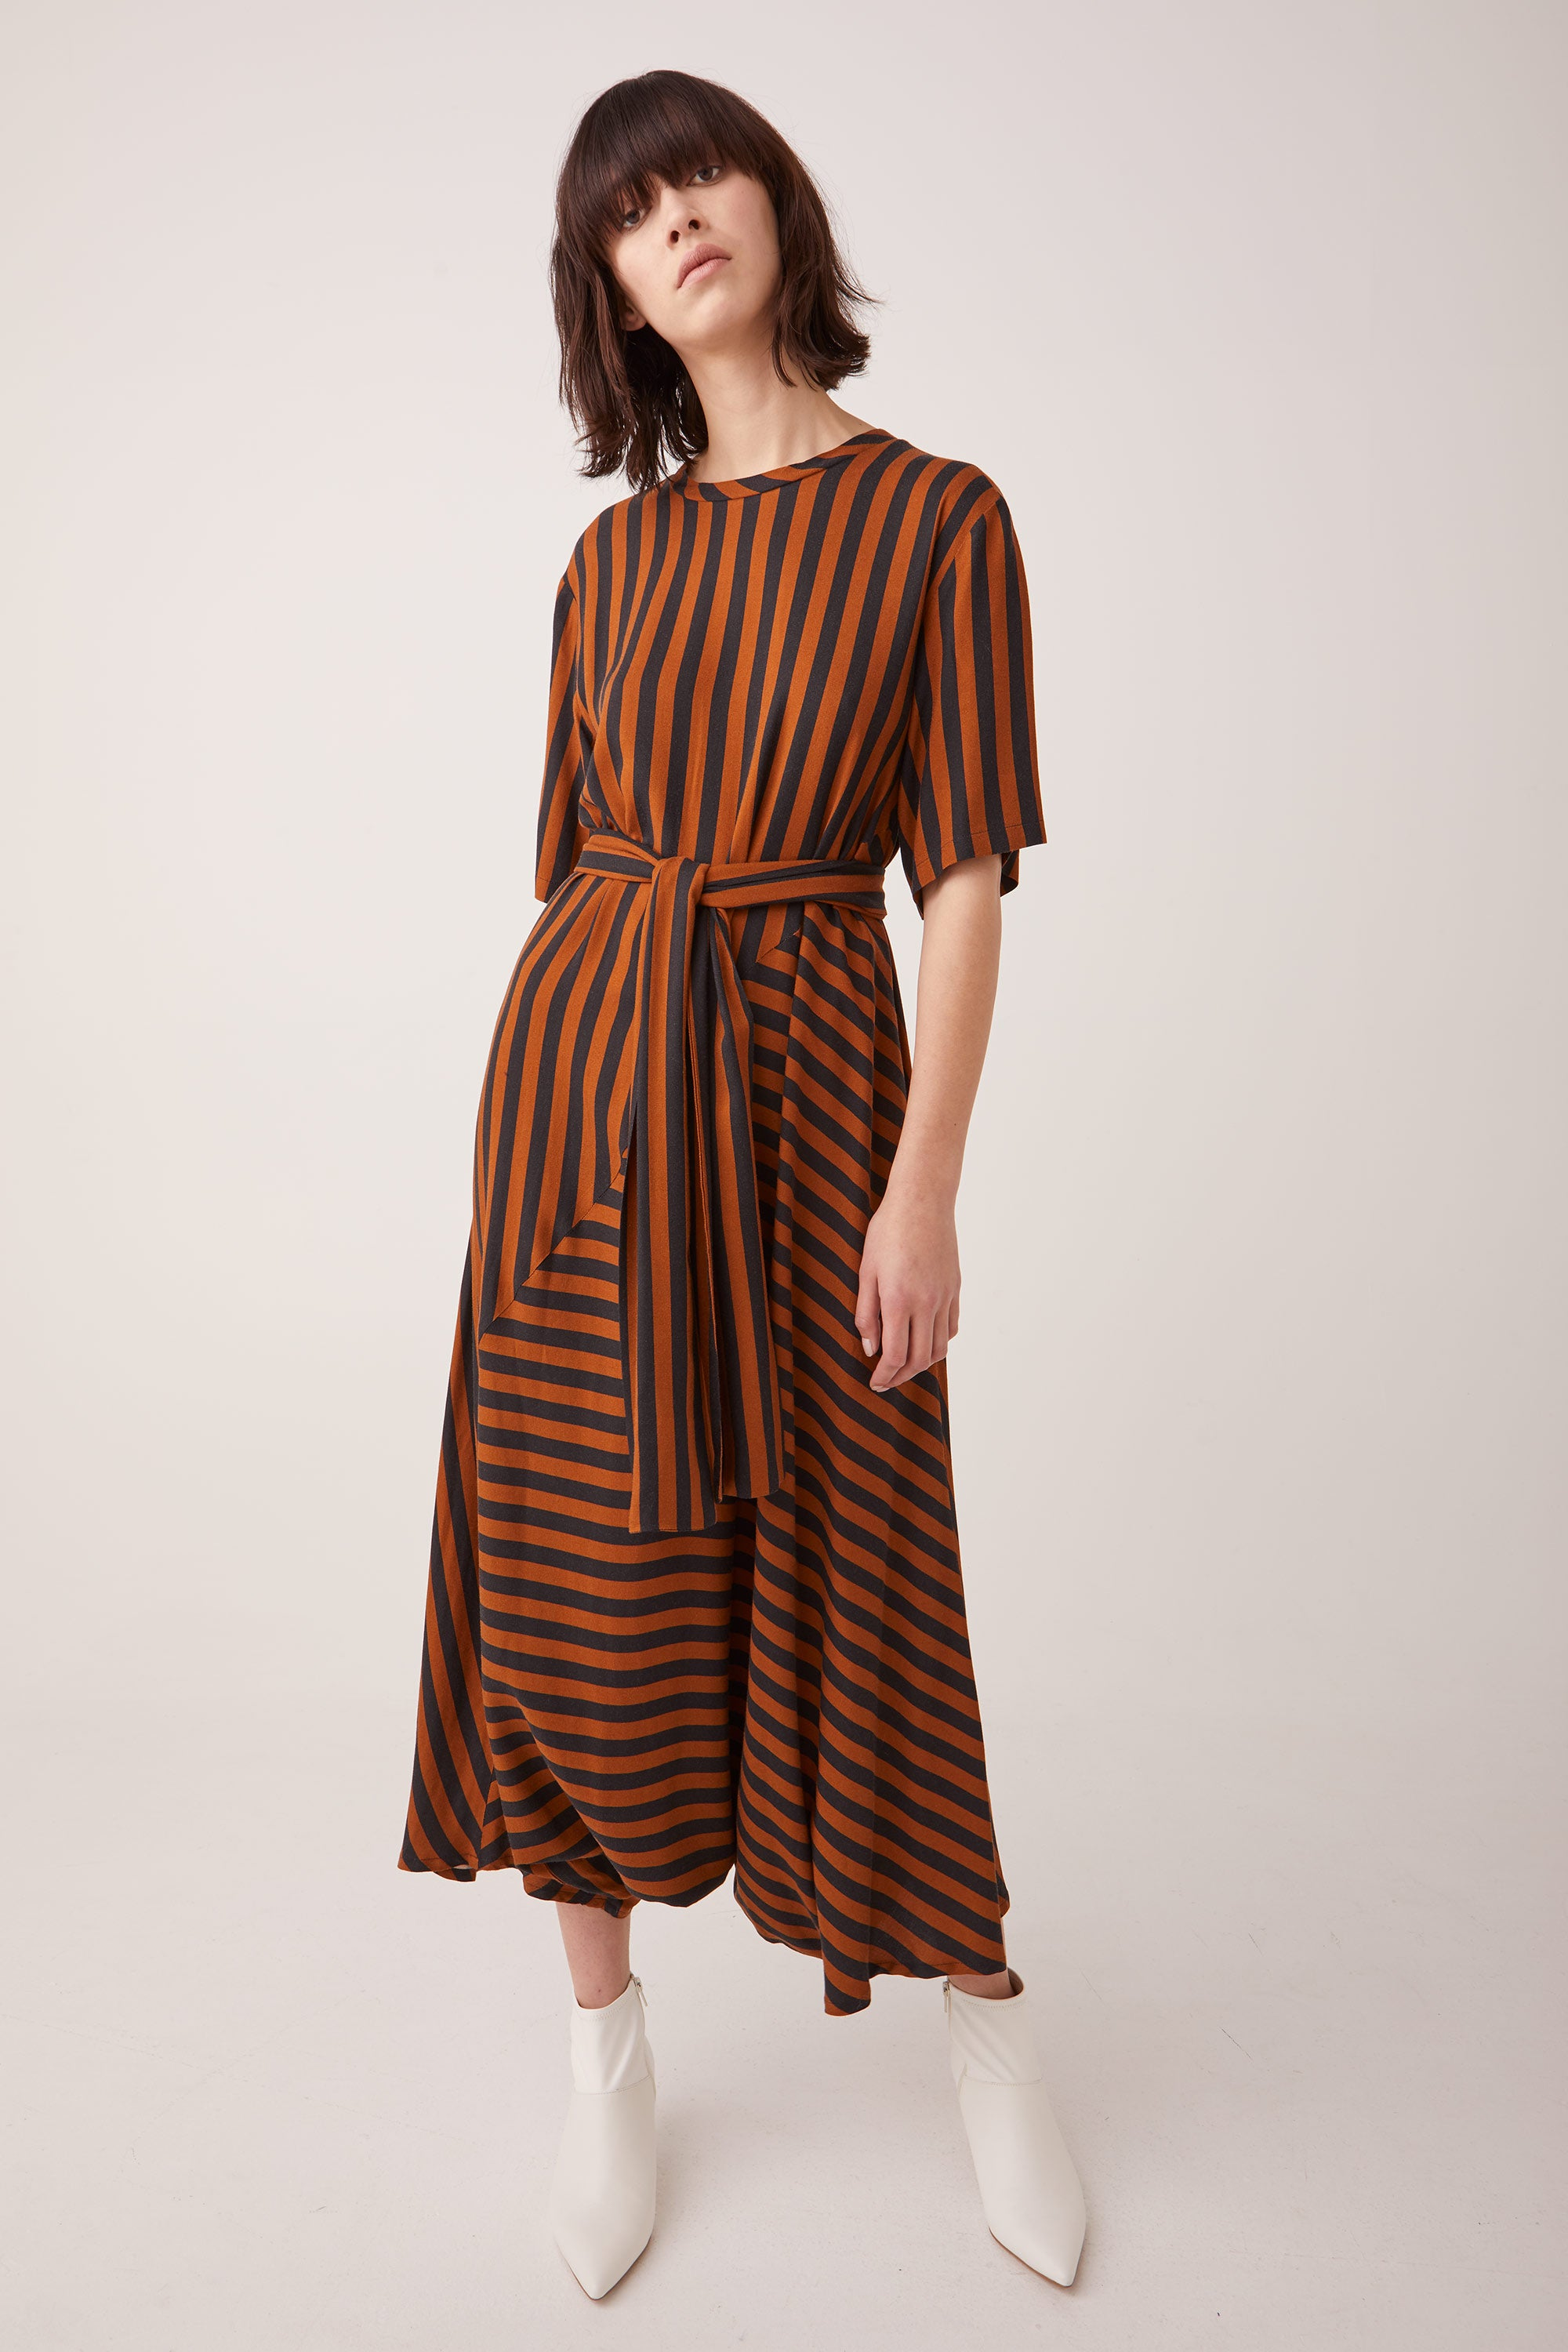 Ricochet NZ Fashion Designer Clothing Boutique AW19 Ville Dress Black Brown Stripe Made in NZ